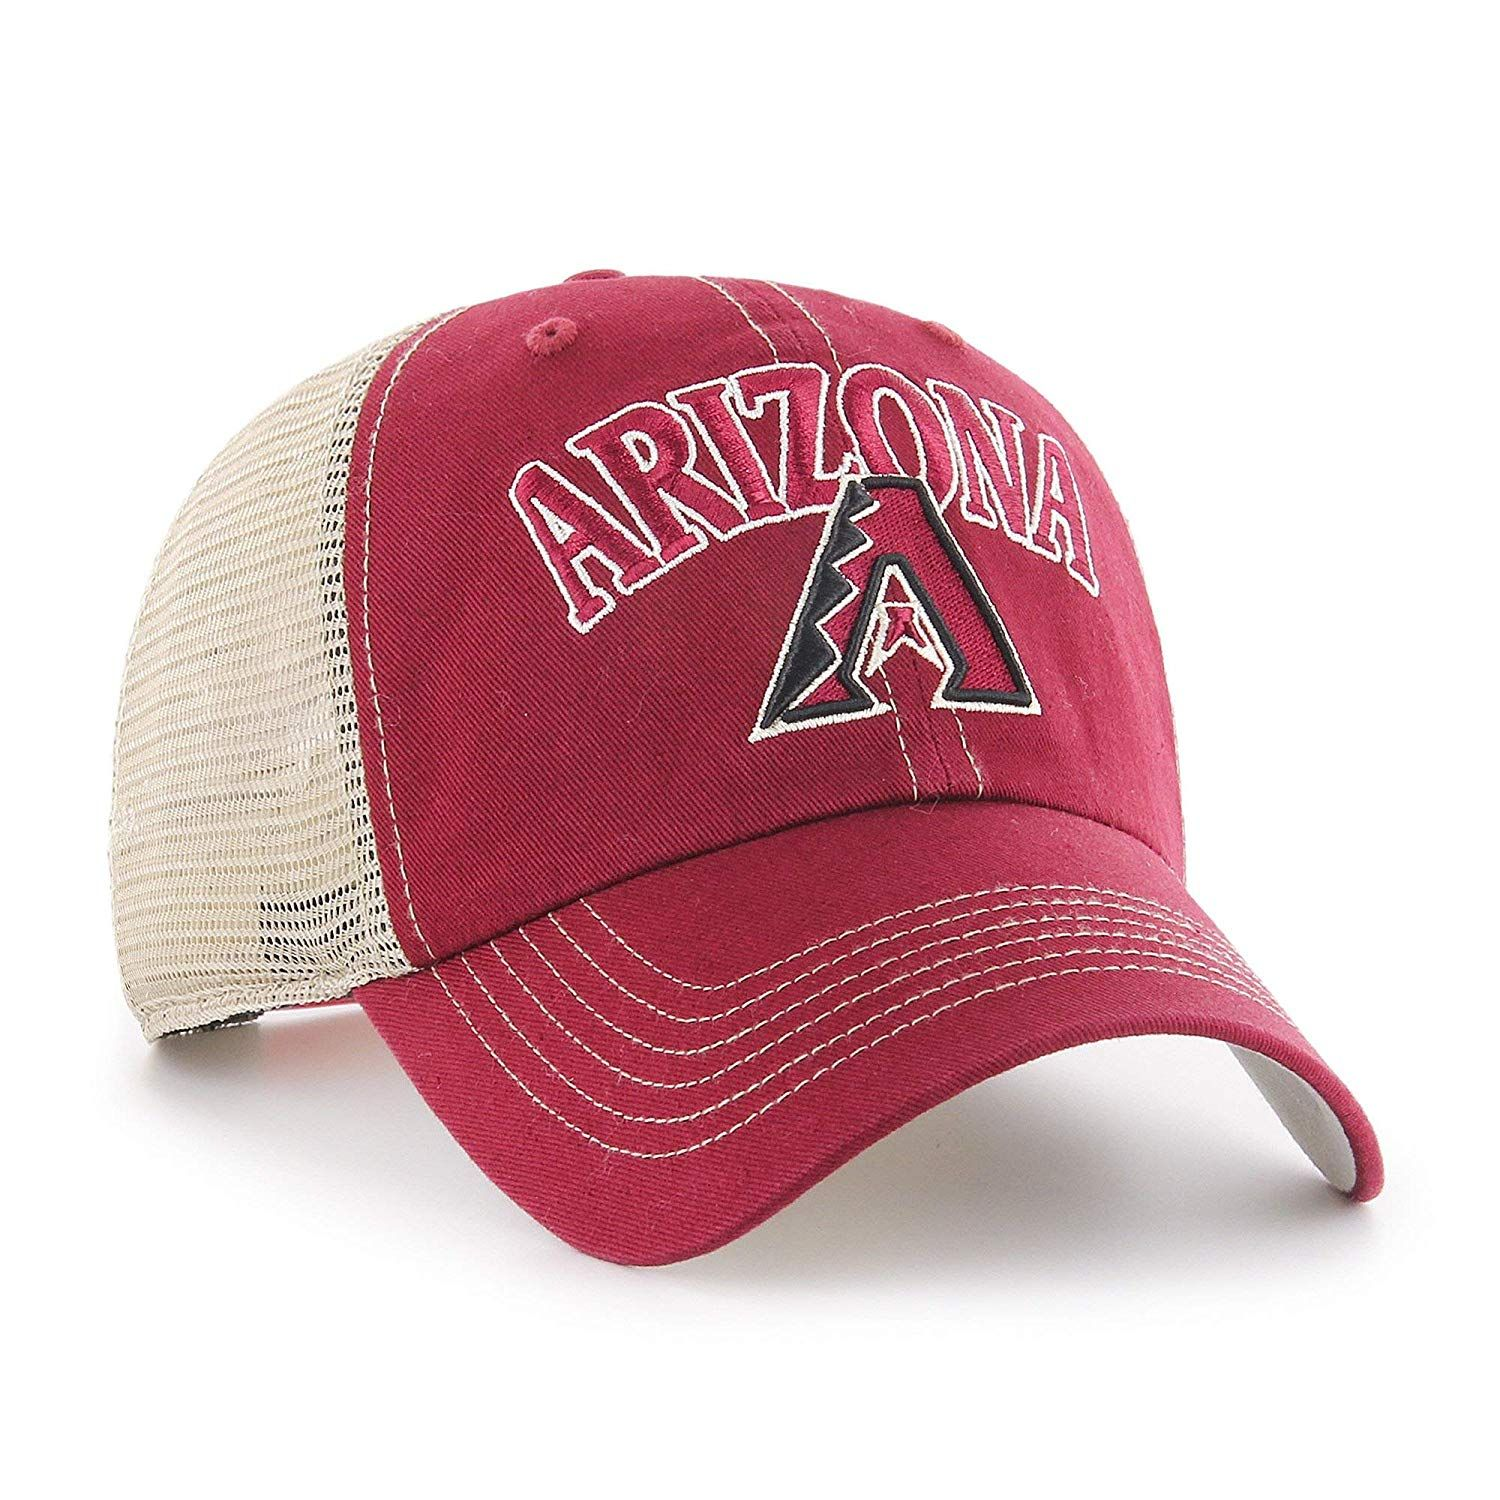 10cf89ea4 Fan Favorite MLB Arizona Diamondbacks Aliquippa Adjustable Hat, $27.99